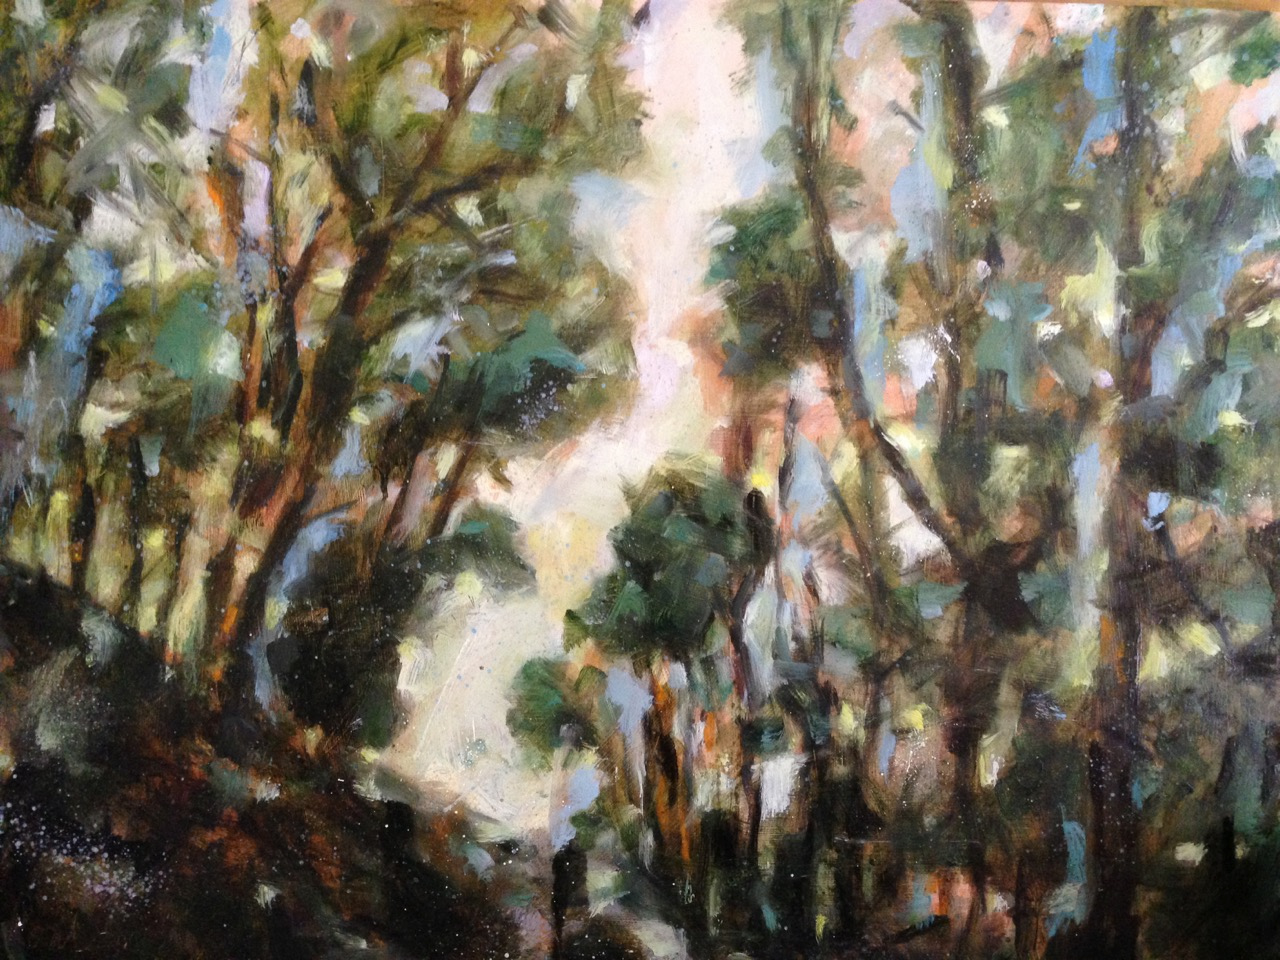 Catherine Coulson | Tree tunnel near Stoodleigh |2014 | 12x16in | oil on board